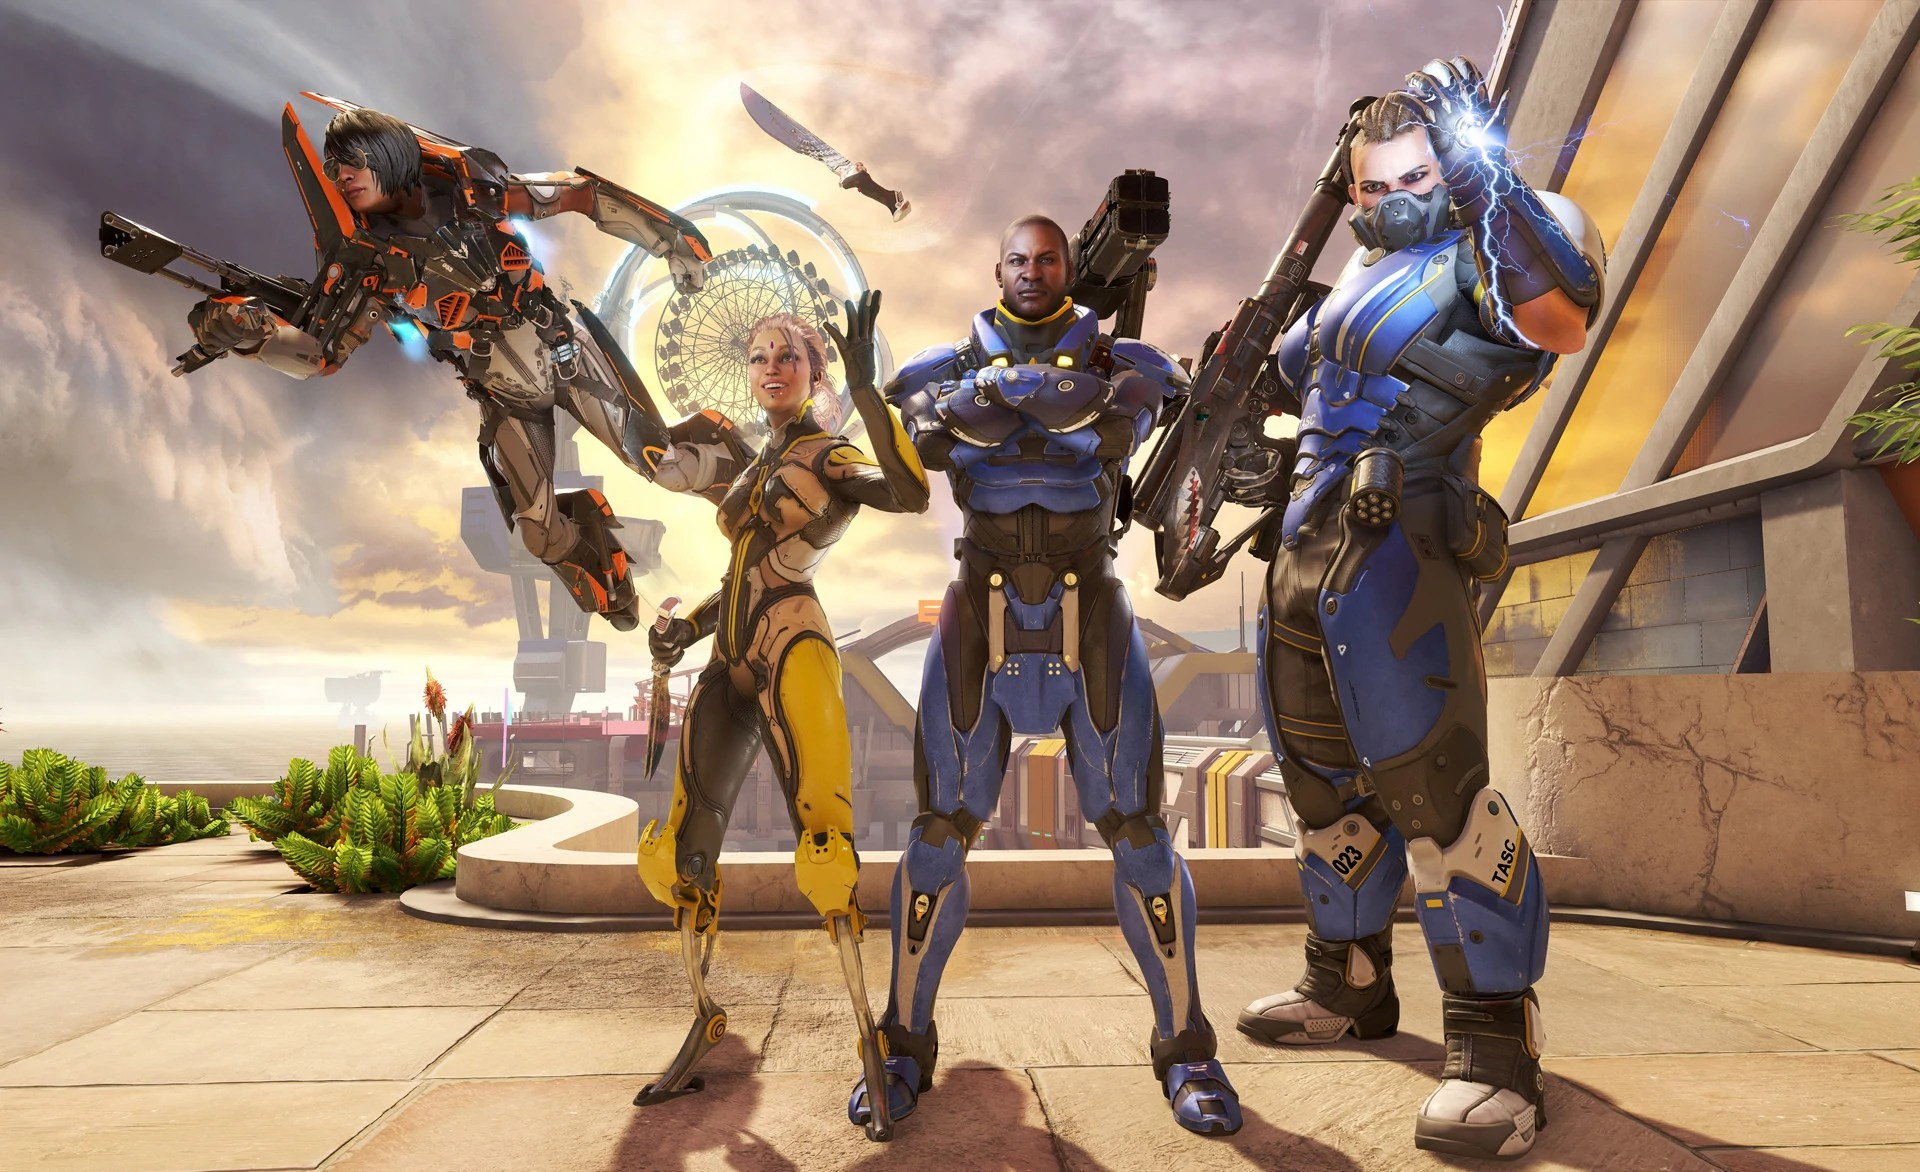 Video Wallpaper Hd Fall Lawbreakers Wiki